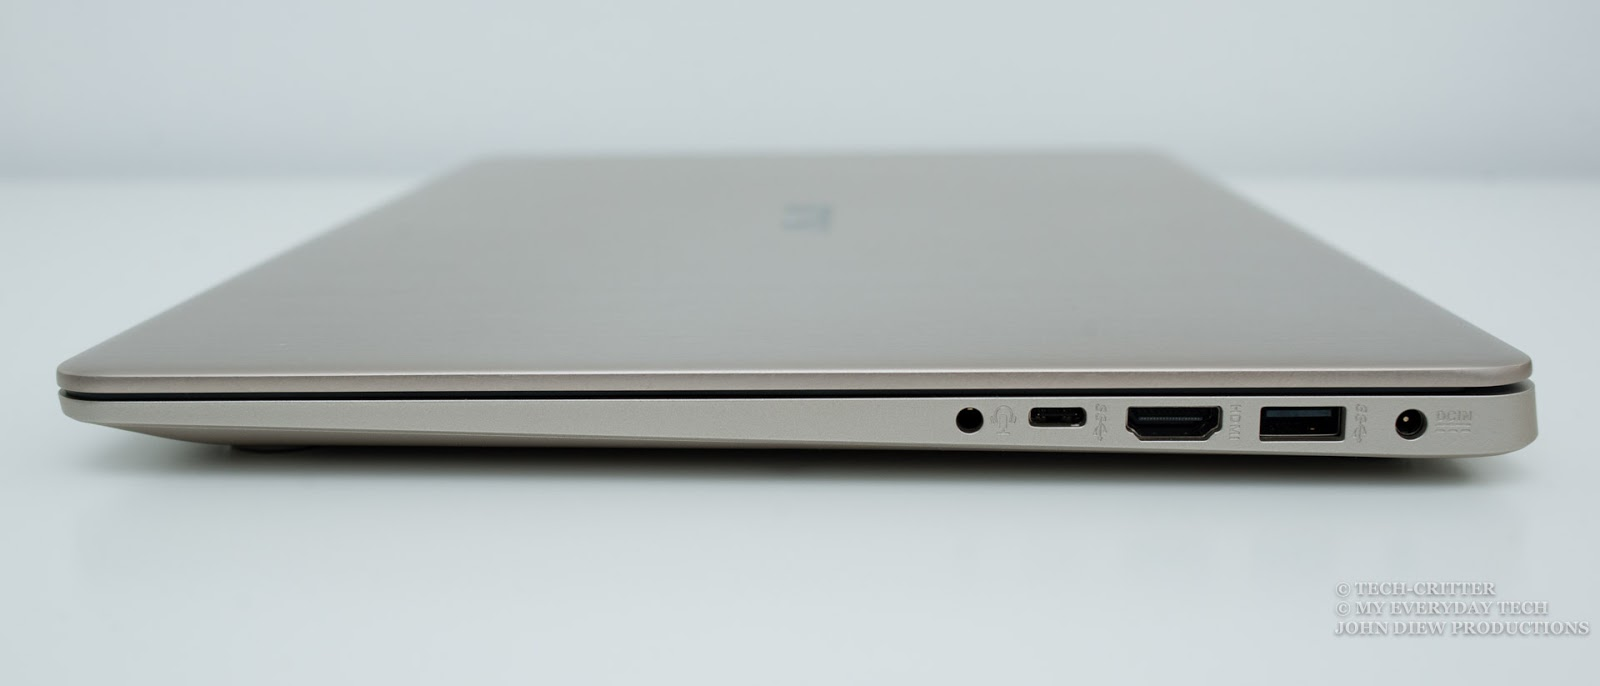 ASUS VivoBook S15 (S510U) Review: Portable 15-incher on